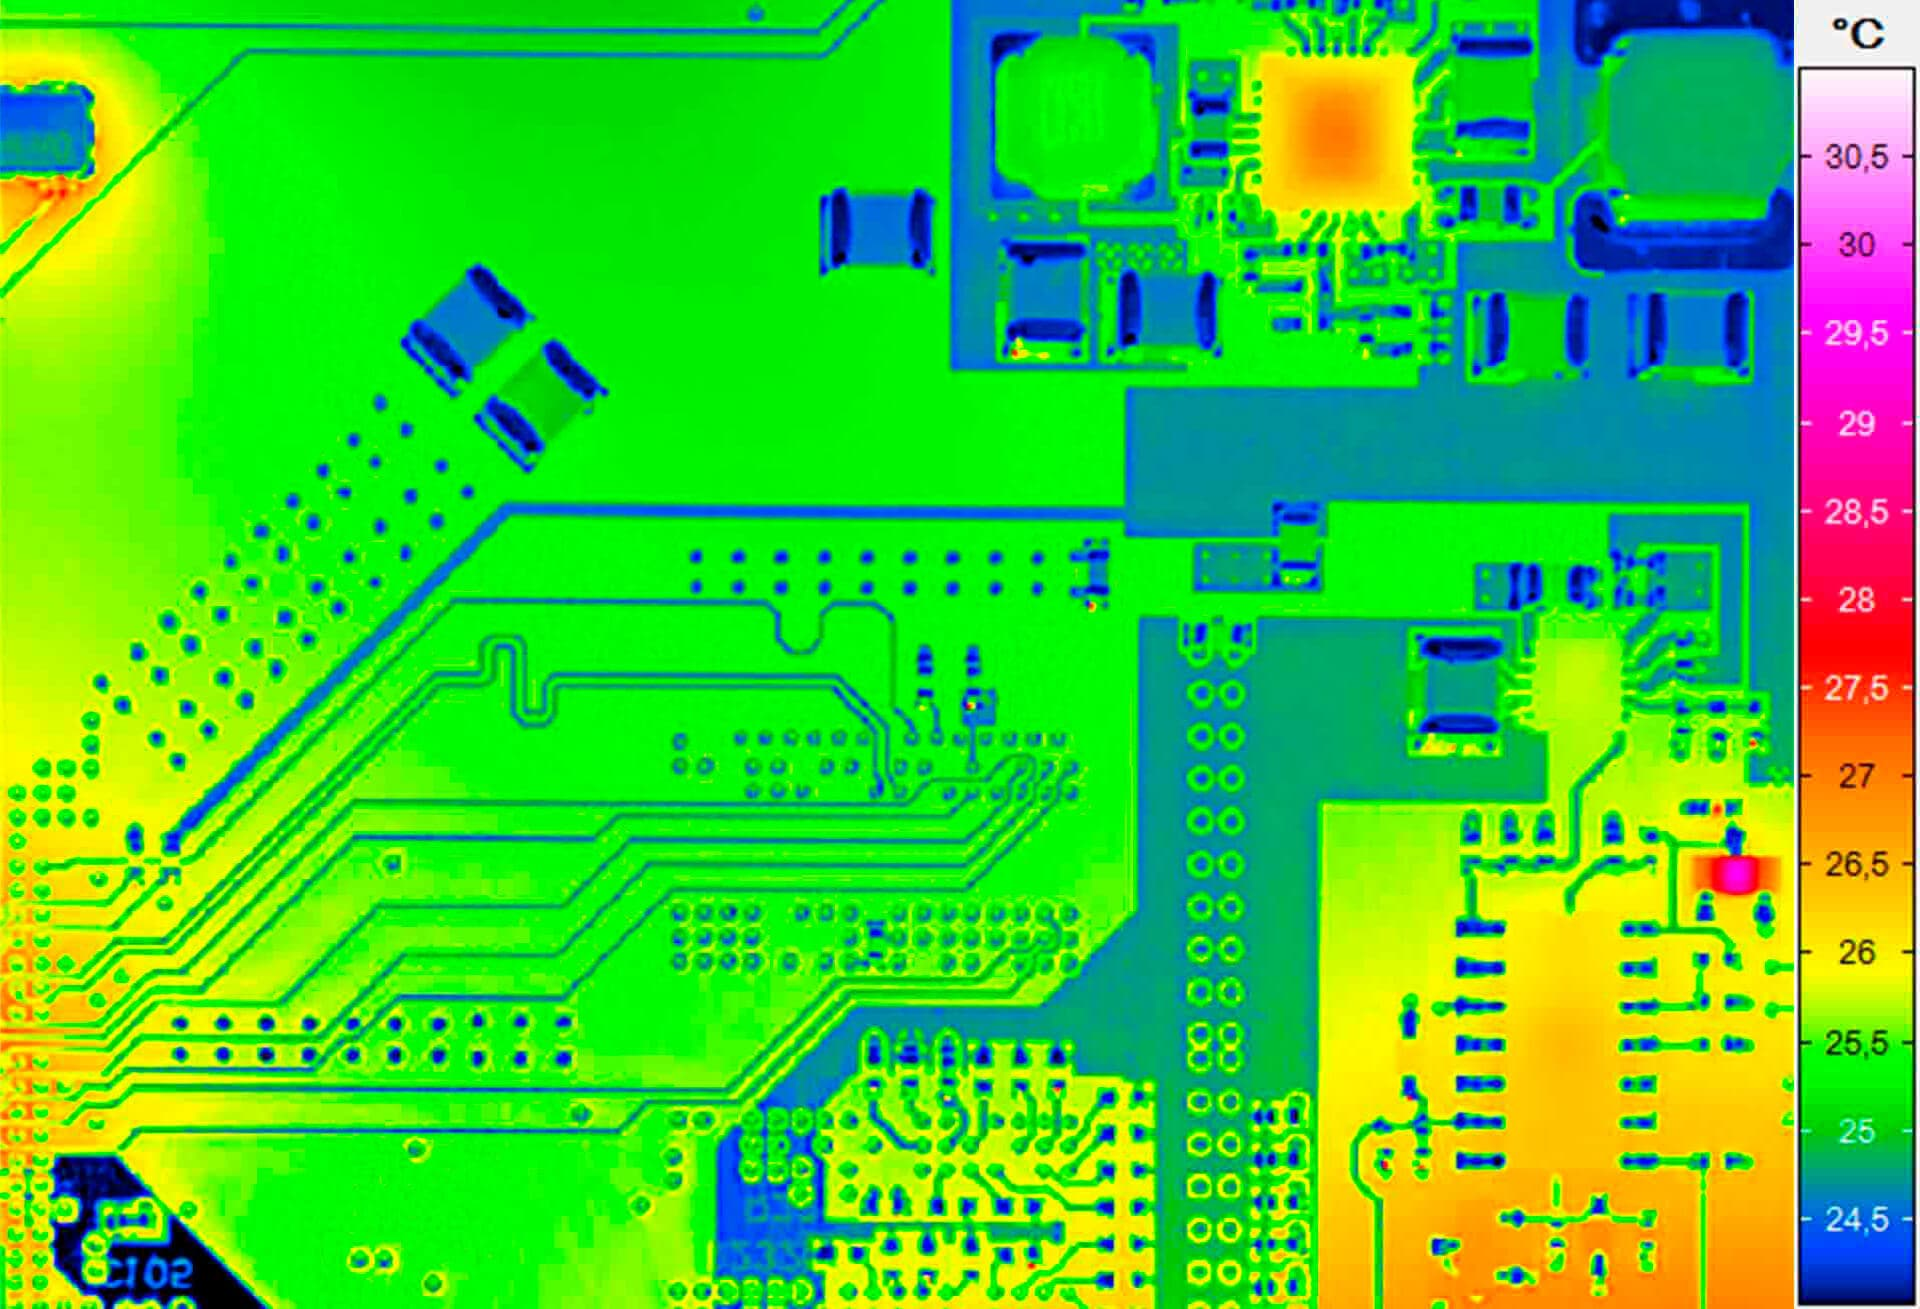 Microthermography of an electronics-board